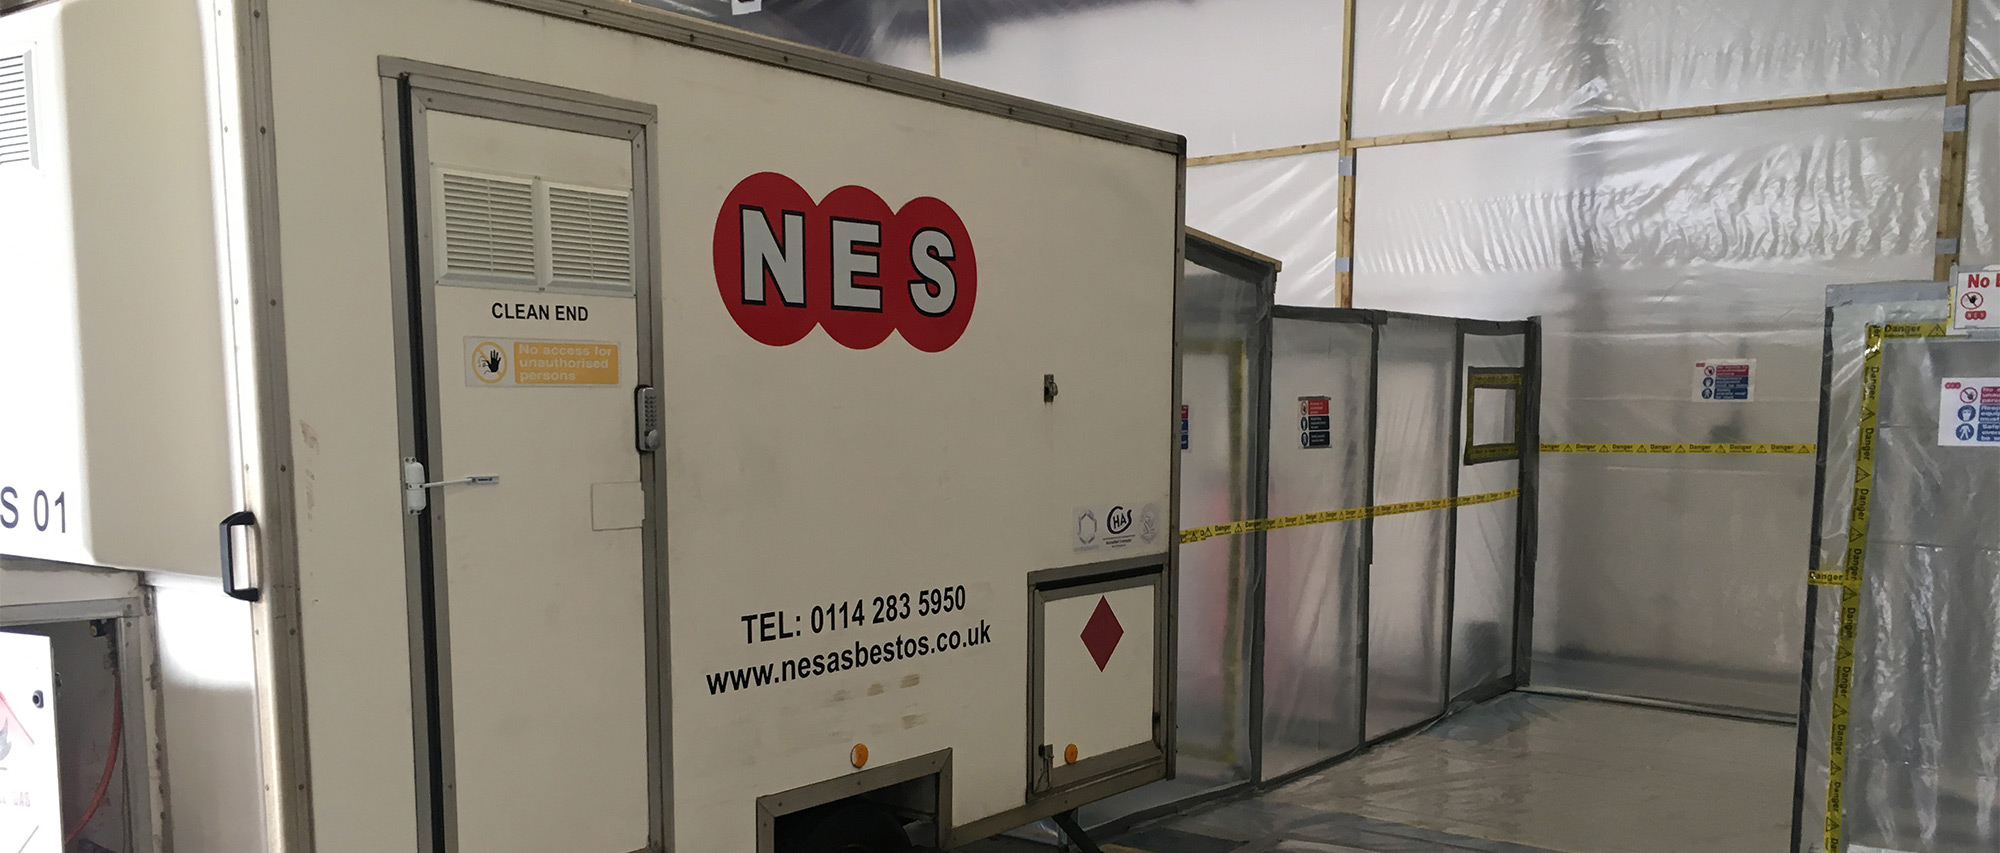 http://nesasbestos.co.uk/sites/default/files/revslider/image/banner2.jpg